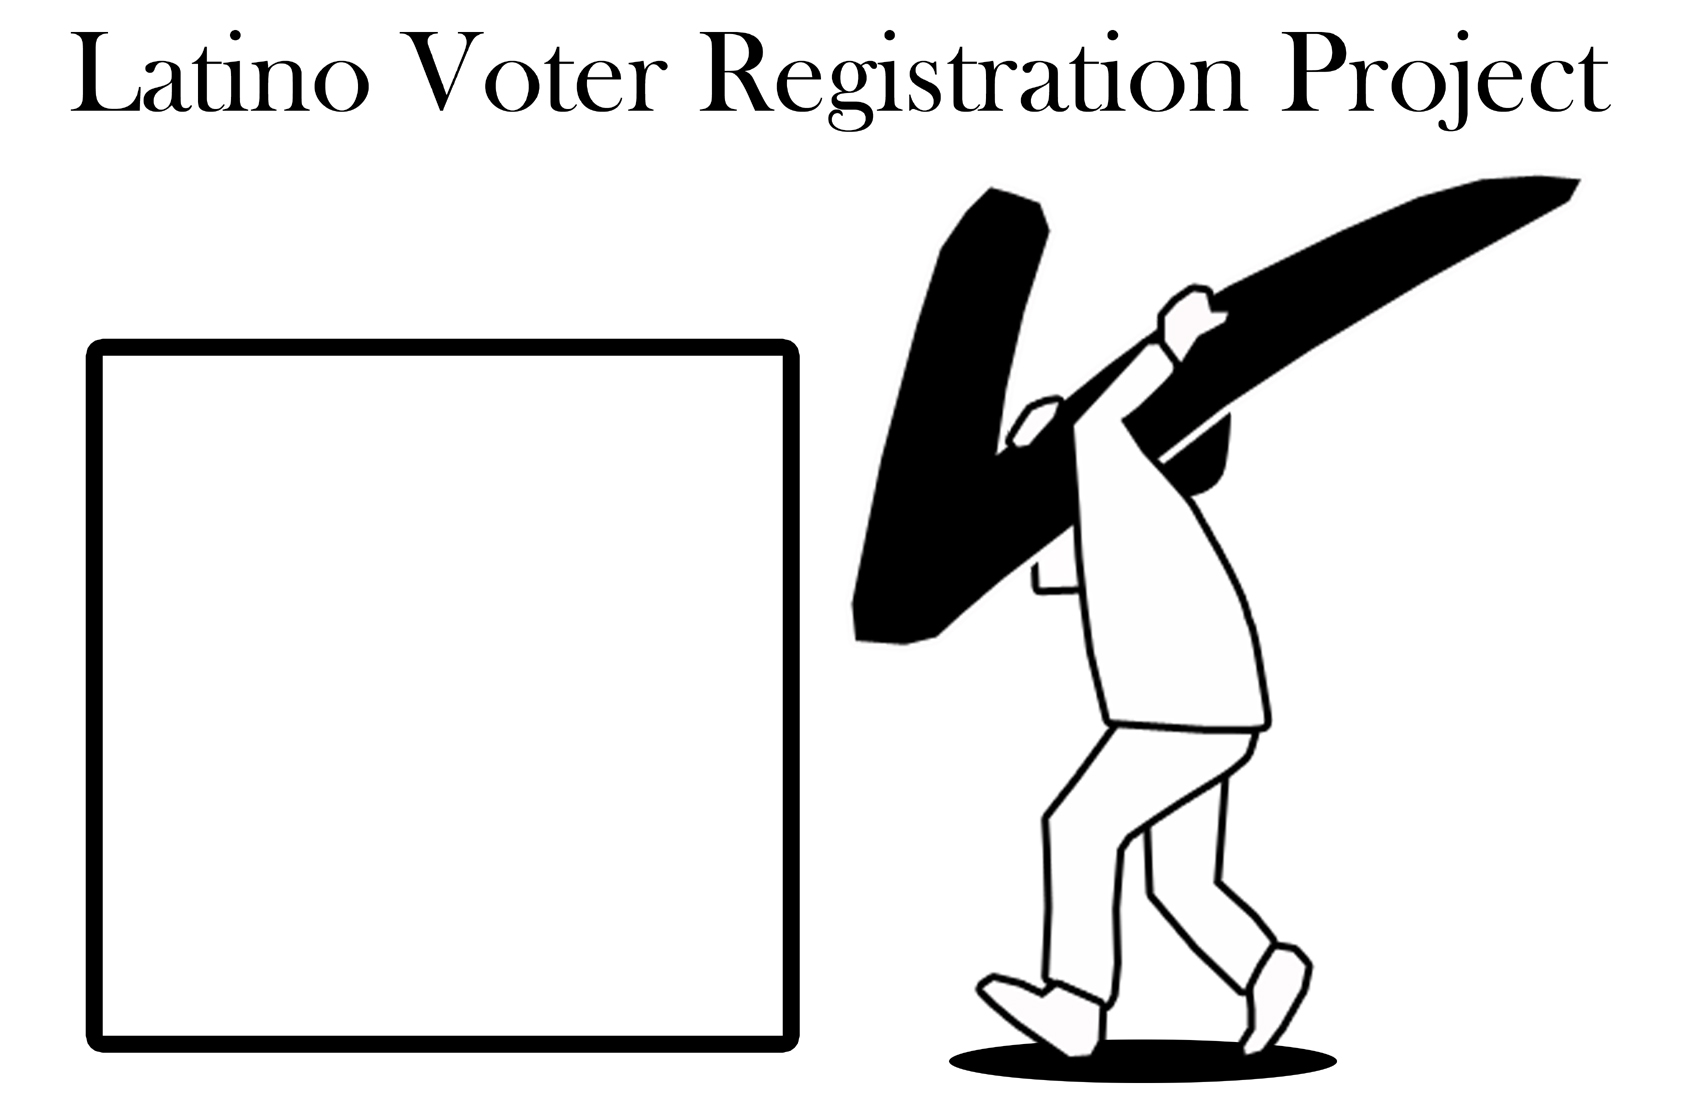 Latino Voter Registration Project